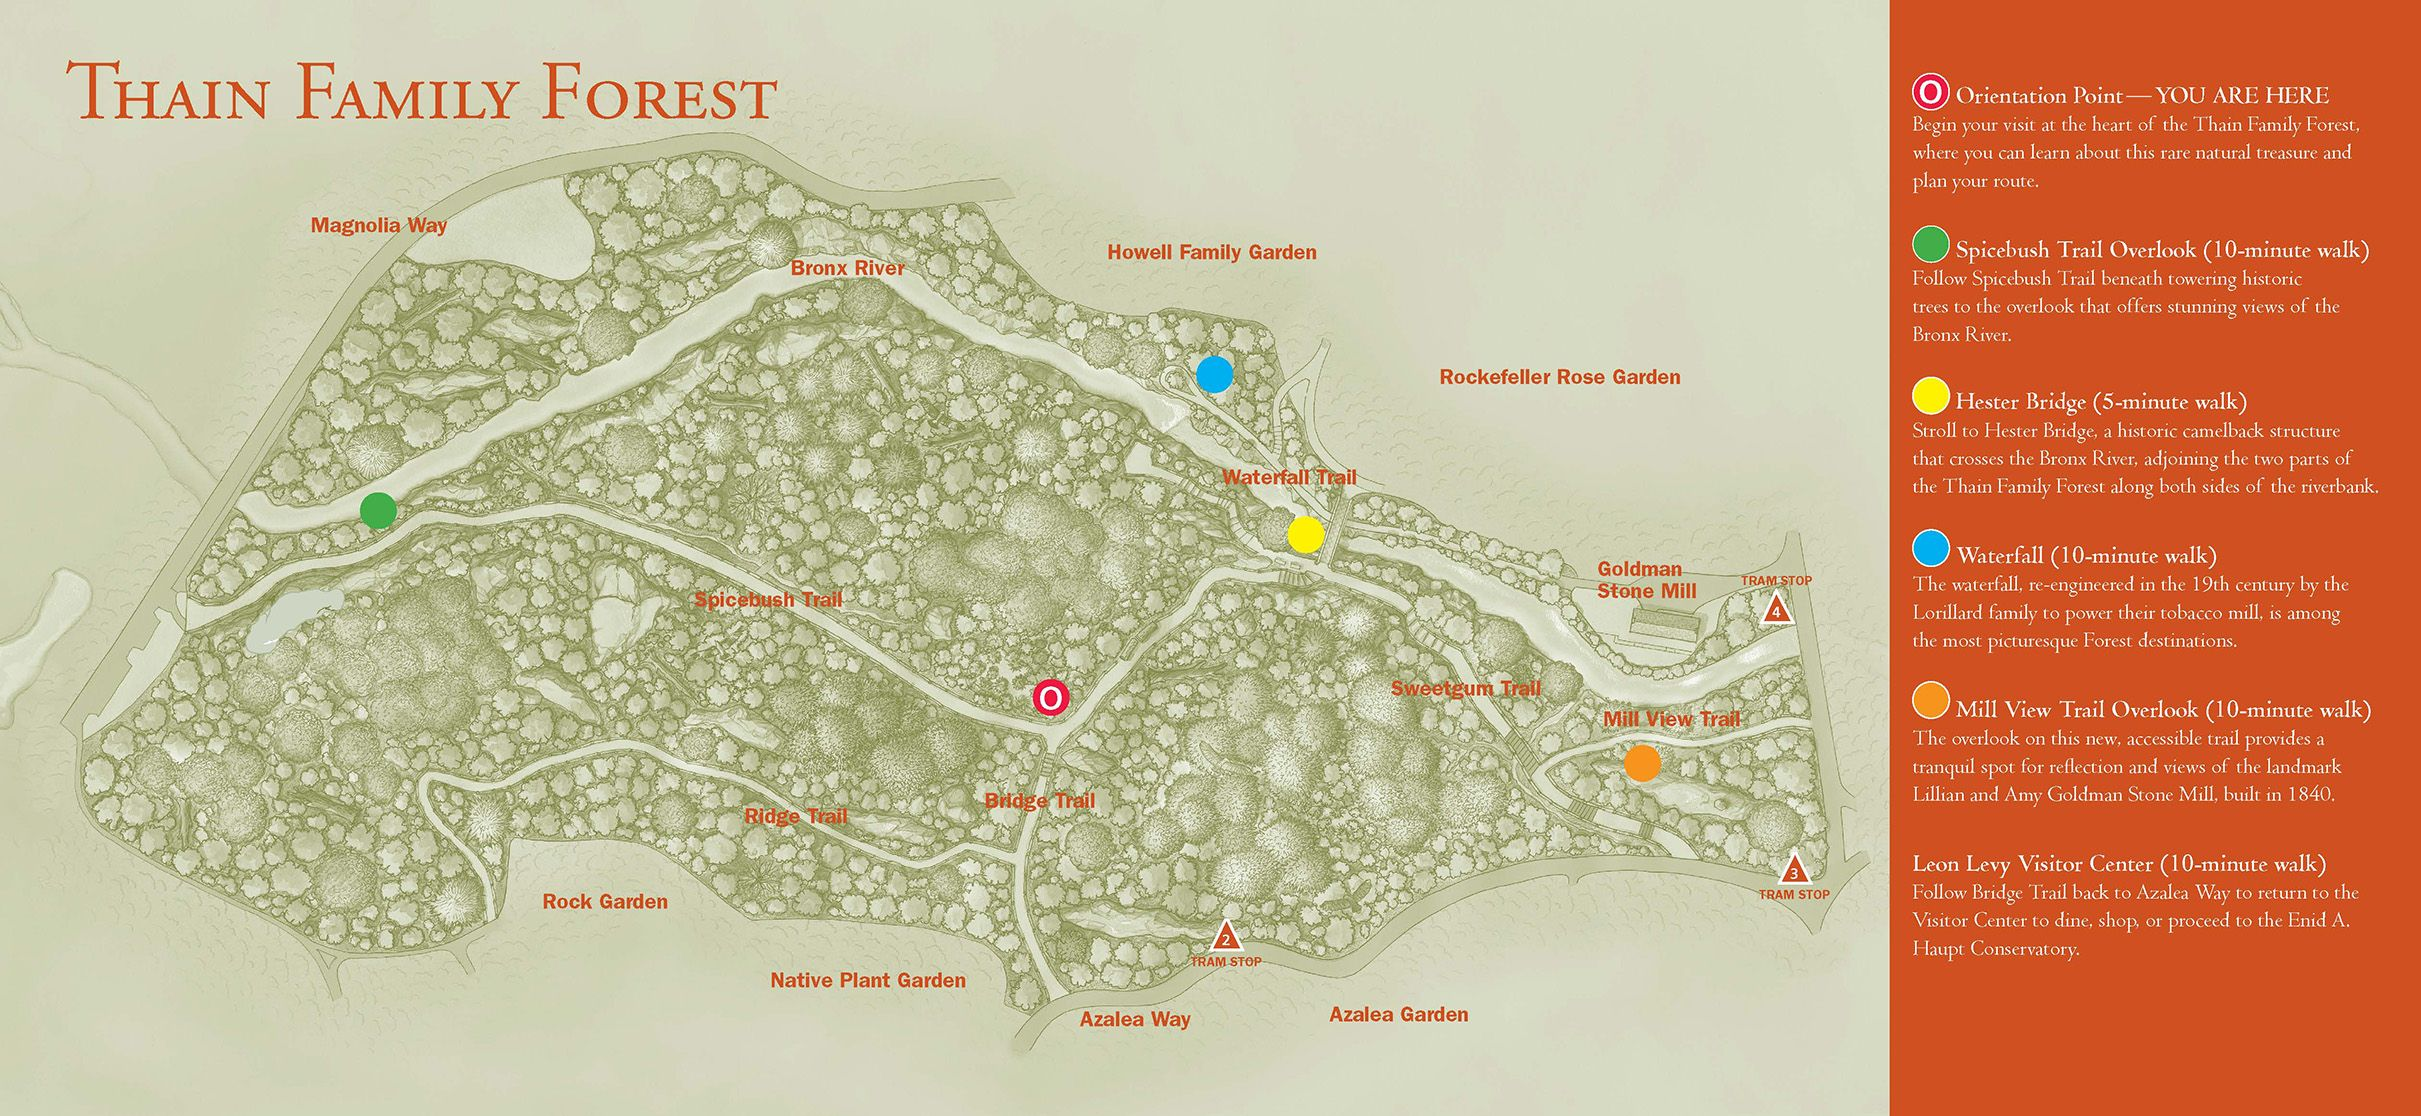 Thain Family Forest, NYBG - Forest Map | Trips, Local parks ... on